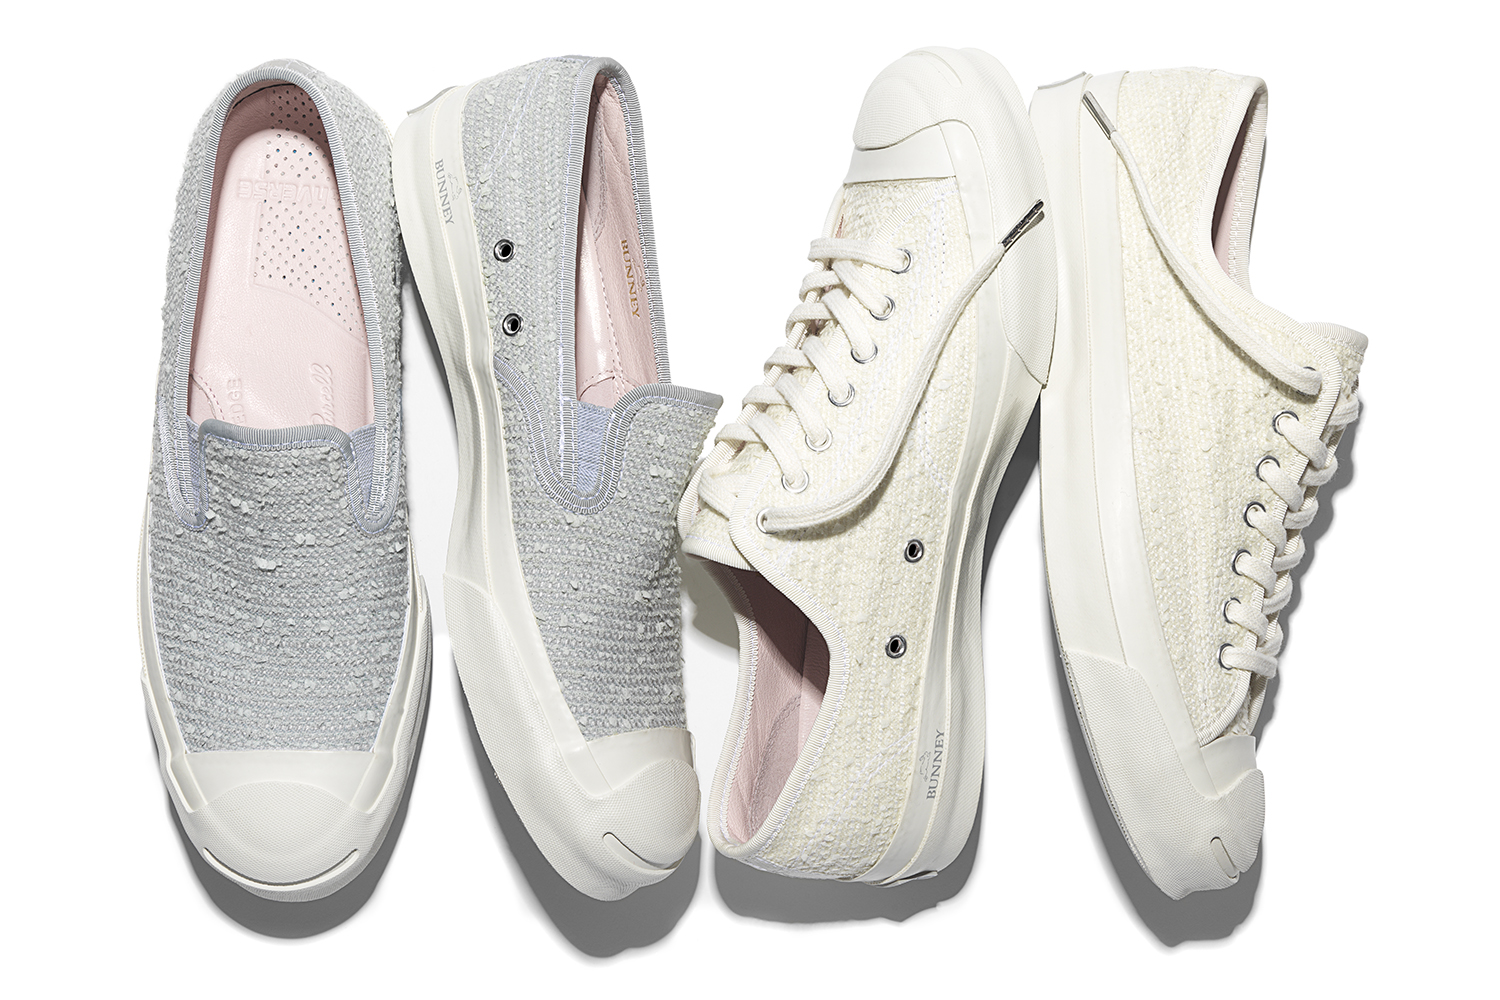 converse jack purcell gray x694  converse jack Percell converse jack Percell converse jack Percell